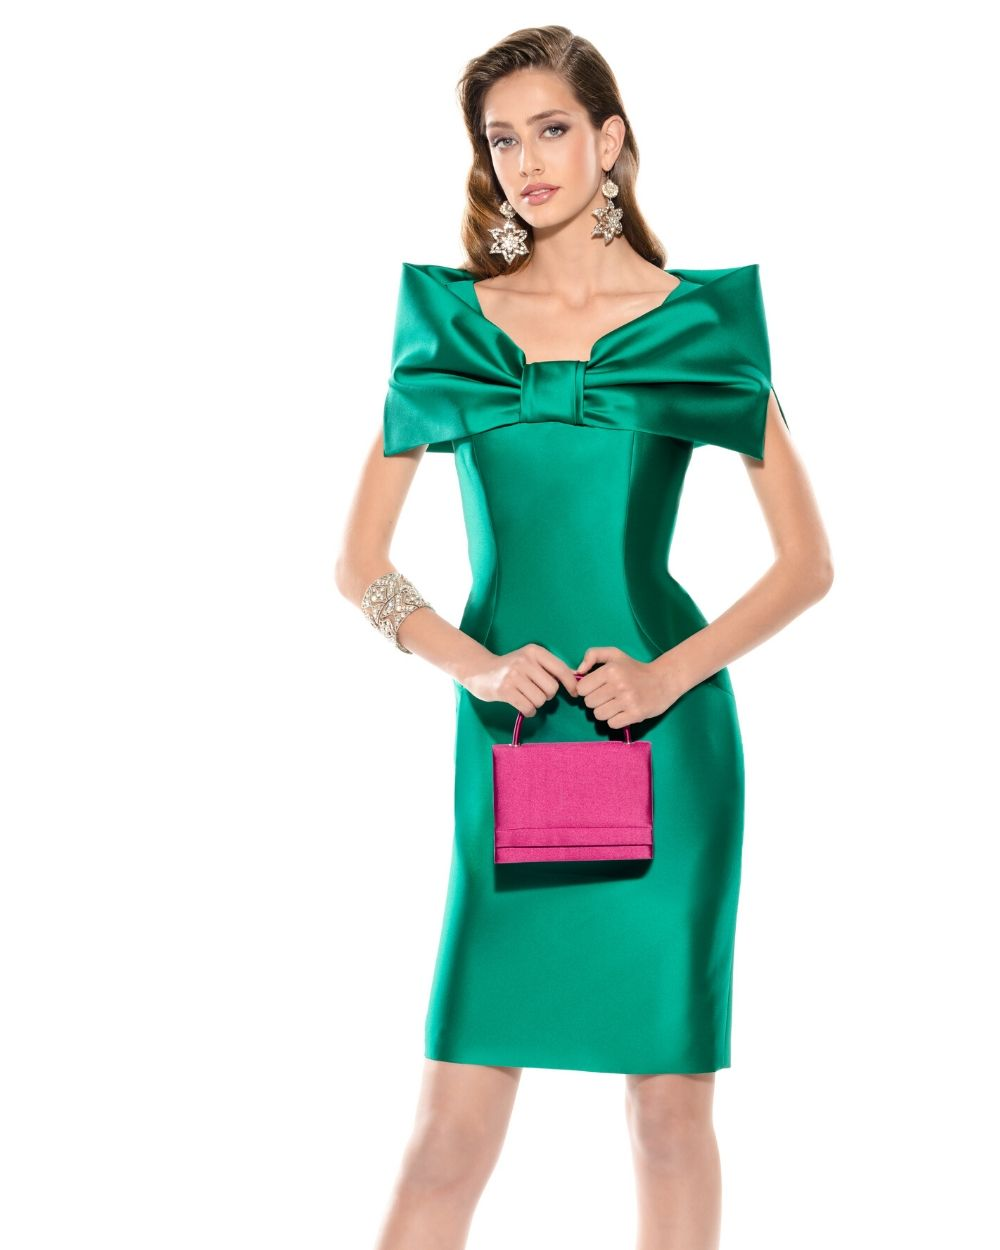 Teresa Ripoll Green Dress - Snooty Frox